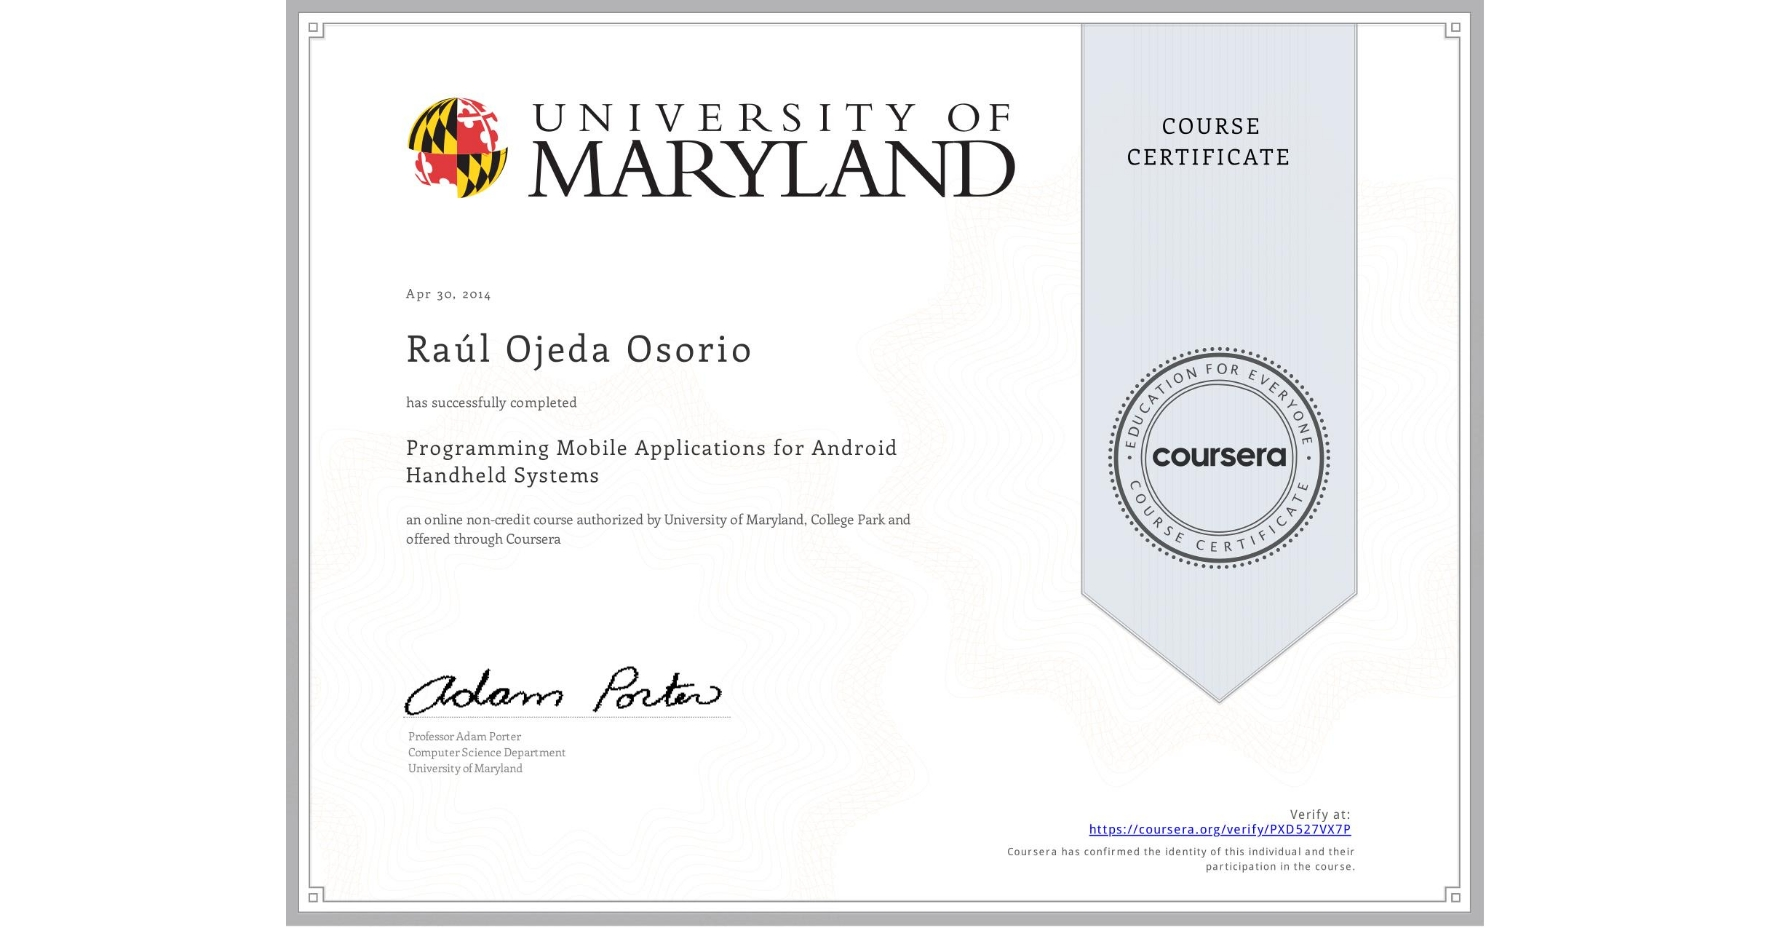 View certificate for Raúl Ojeda Osorio, Programming Mobile Applications for Android Handheld Systems, an online non-credit course authorized by University of Maryland, College Park and offered through Coursera